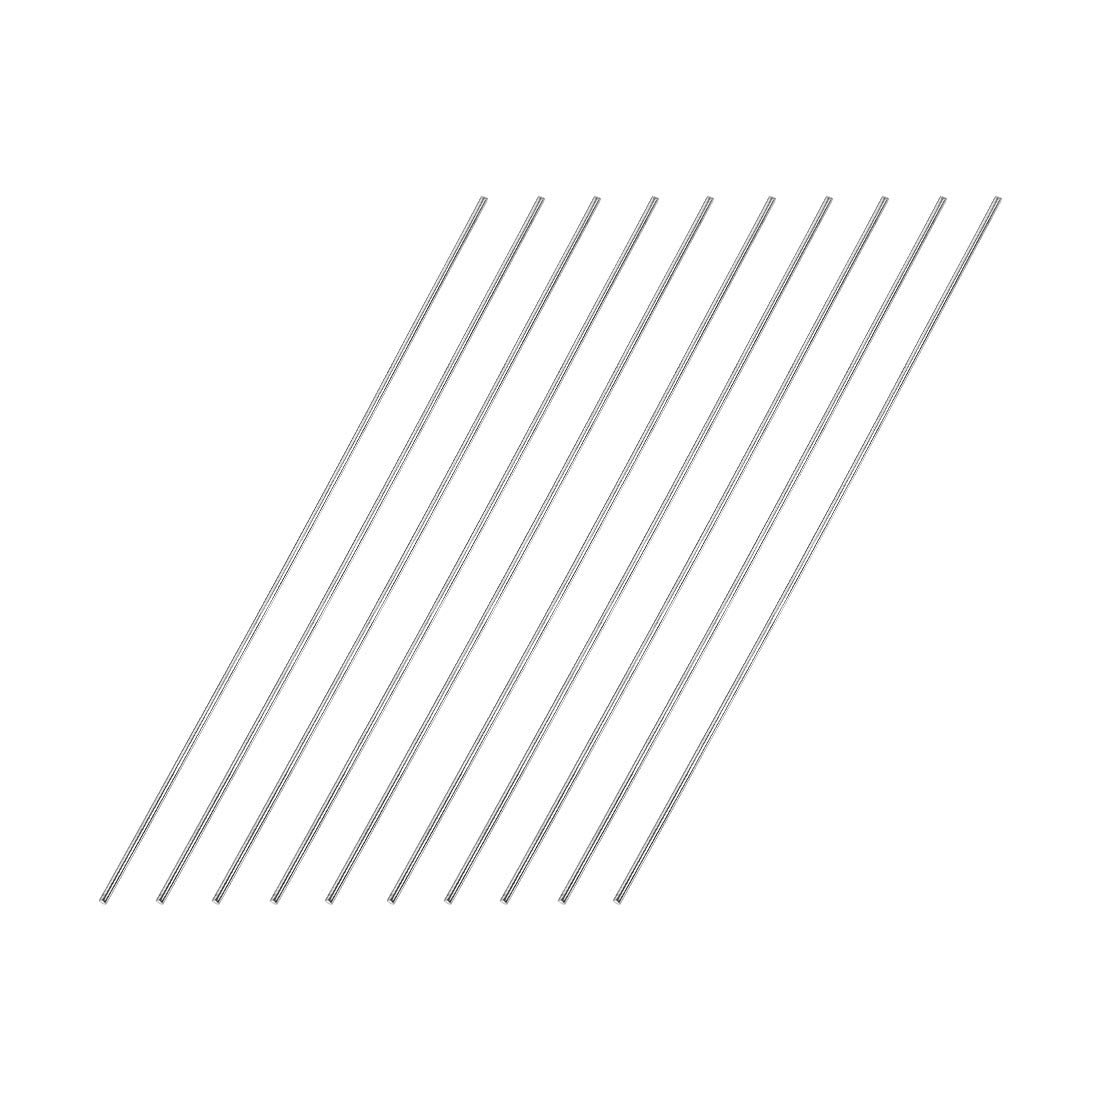 sourcing map 1.5mm x 150mm 304 Stainless Steel Solid Round Rod for DIY Craft 10pcs